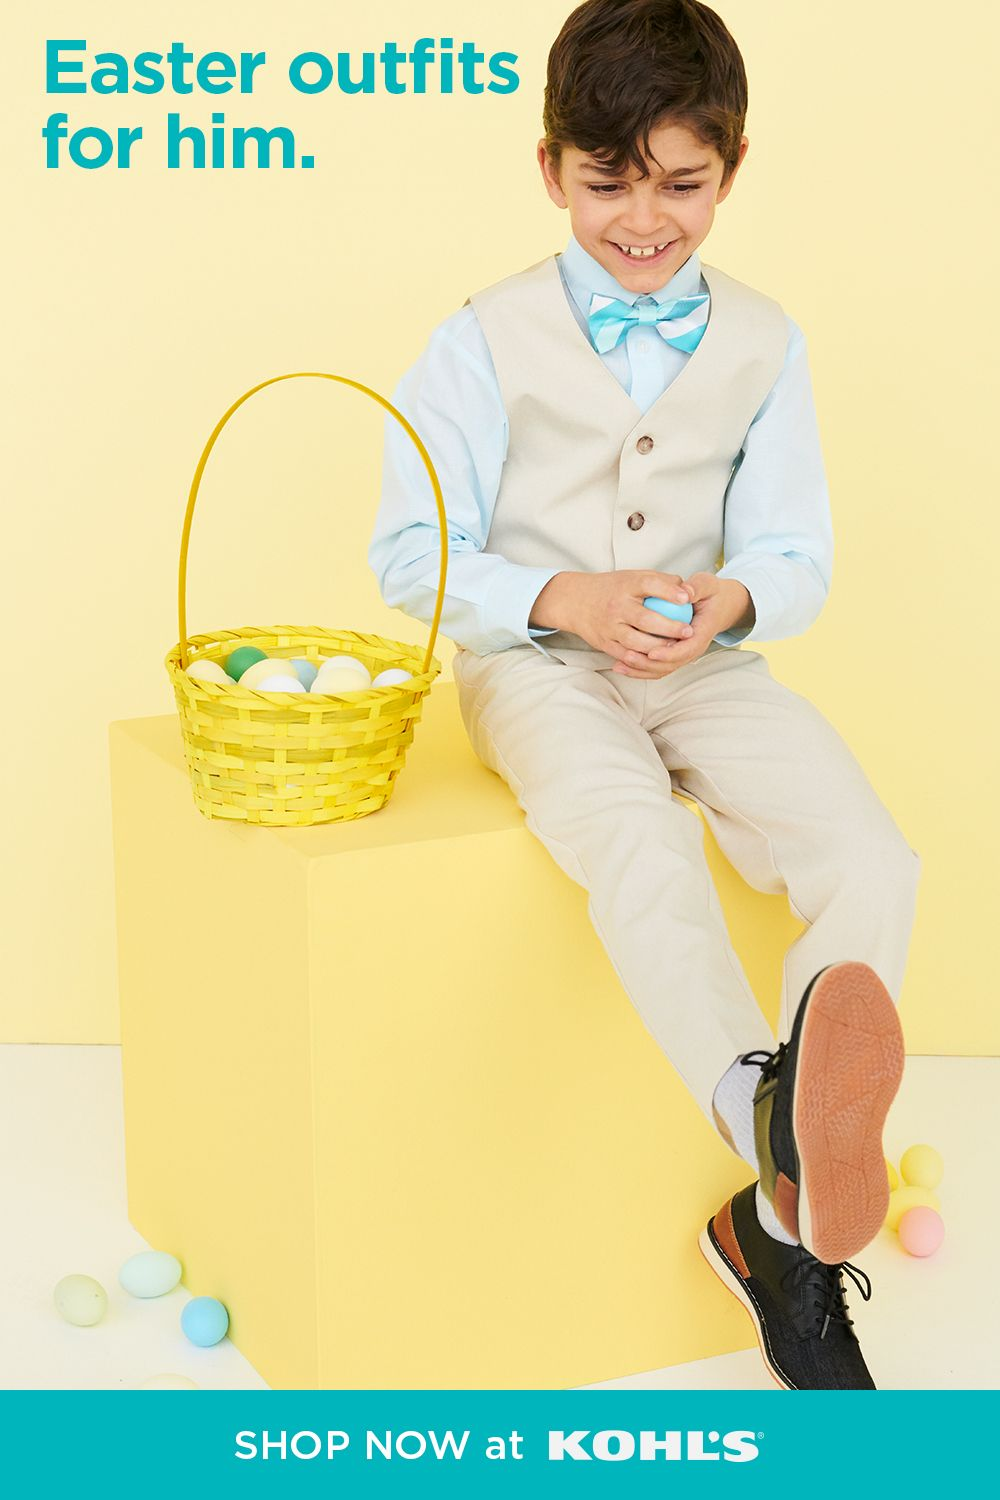 Your little one will be ready for brunch, egg hunts and beyond in a cute Easter outfit. Find handsome boys' suits, colorful bow ties and nice dress shoes he'll love. Shop Easter styles and more at Kohl's and Kohls.com. #easter #kidsstyle